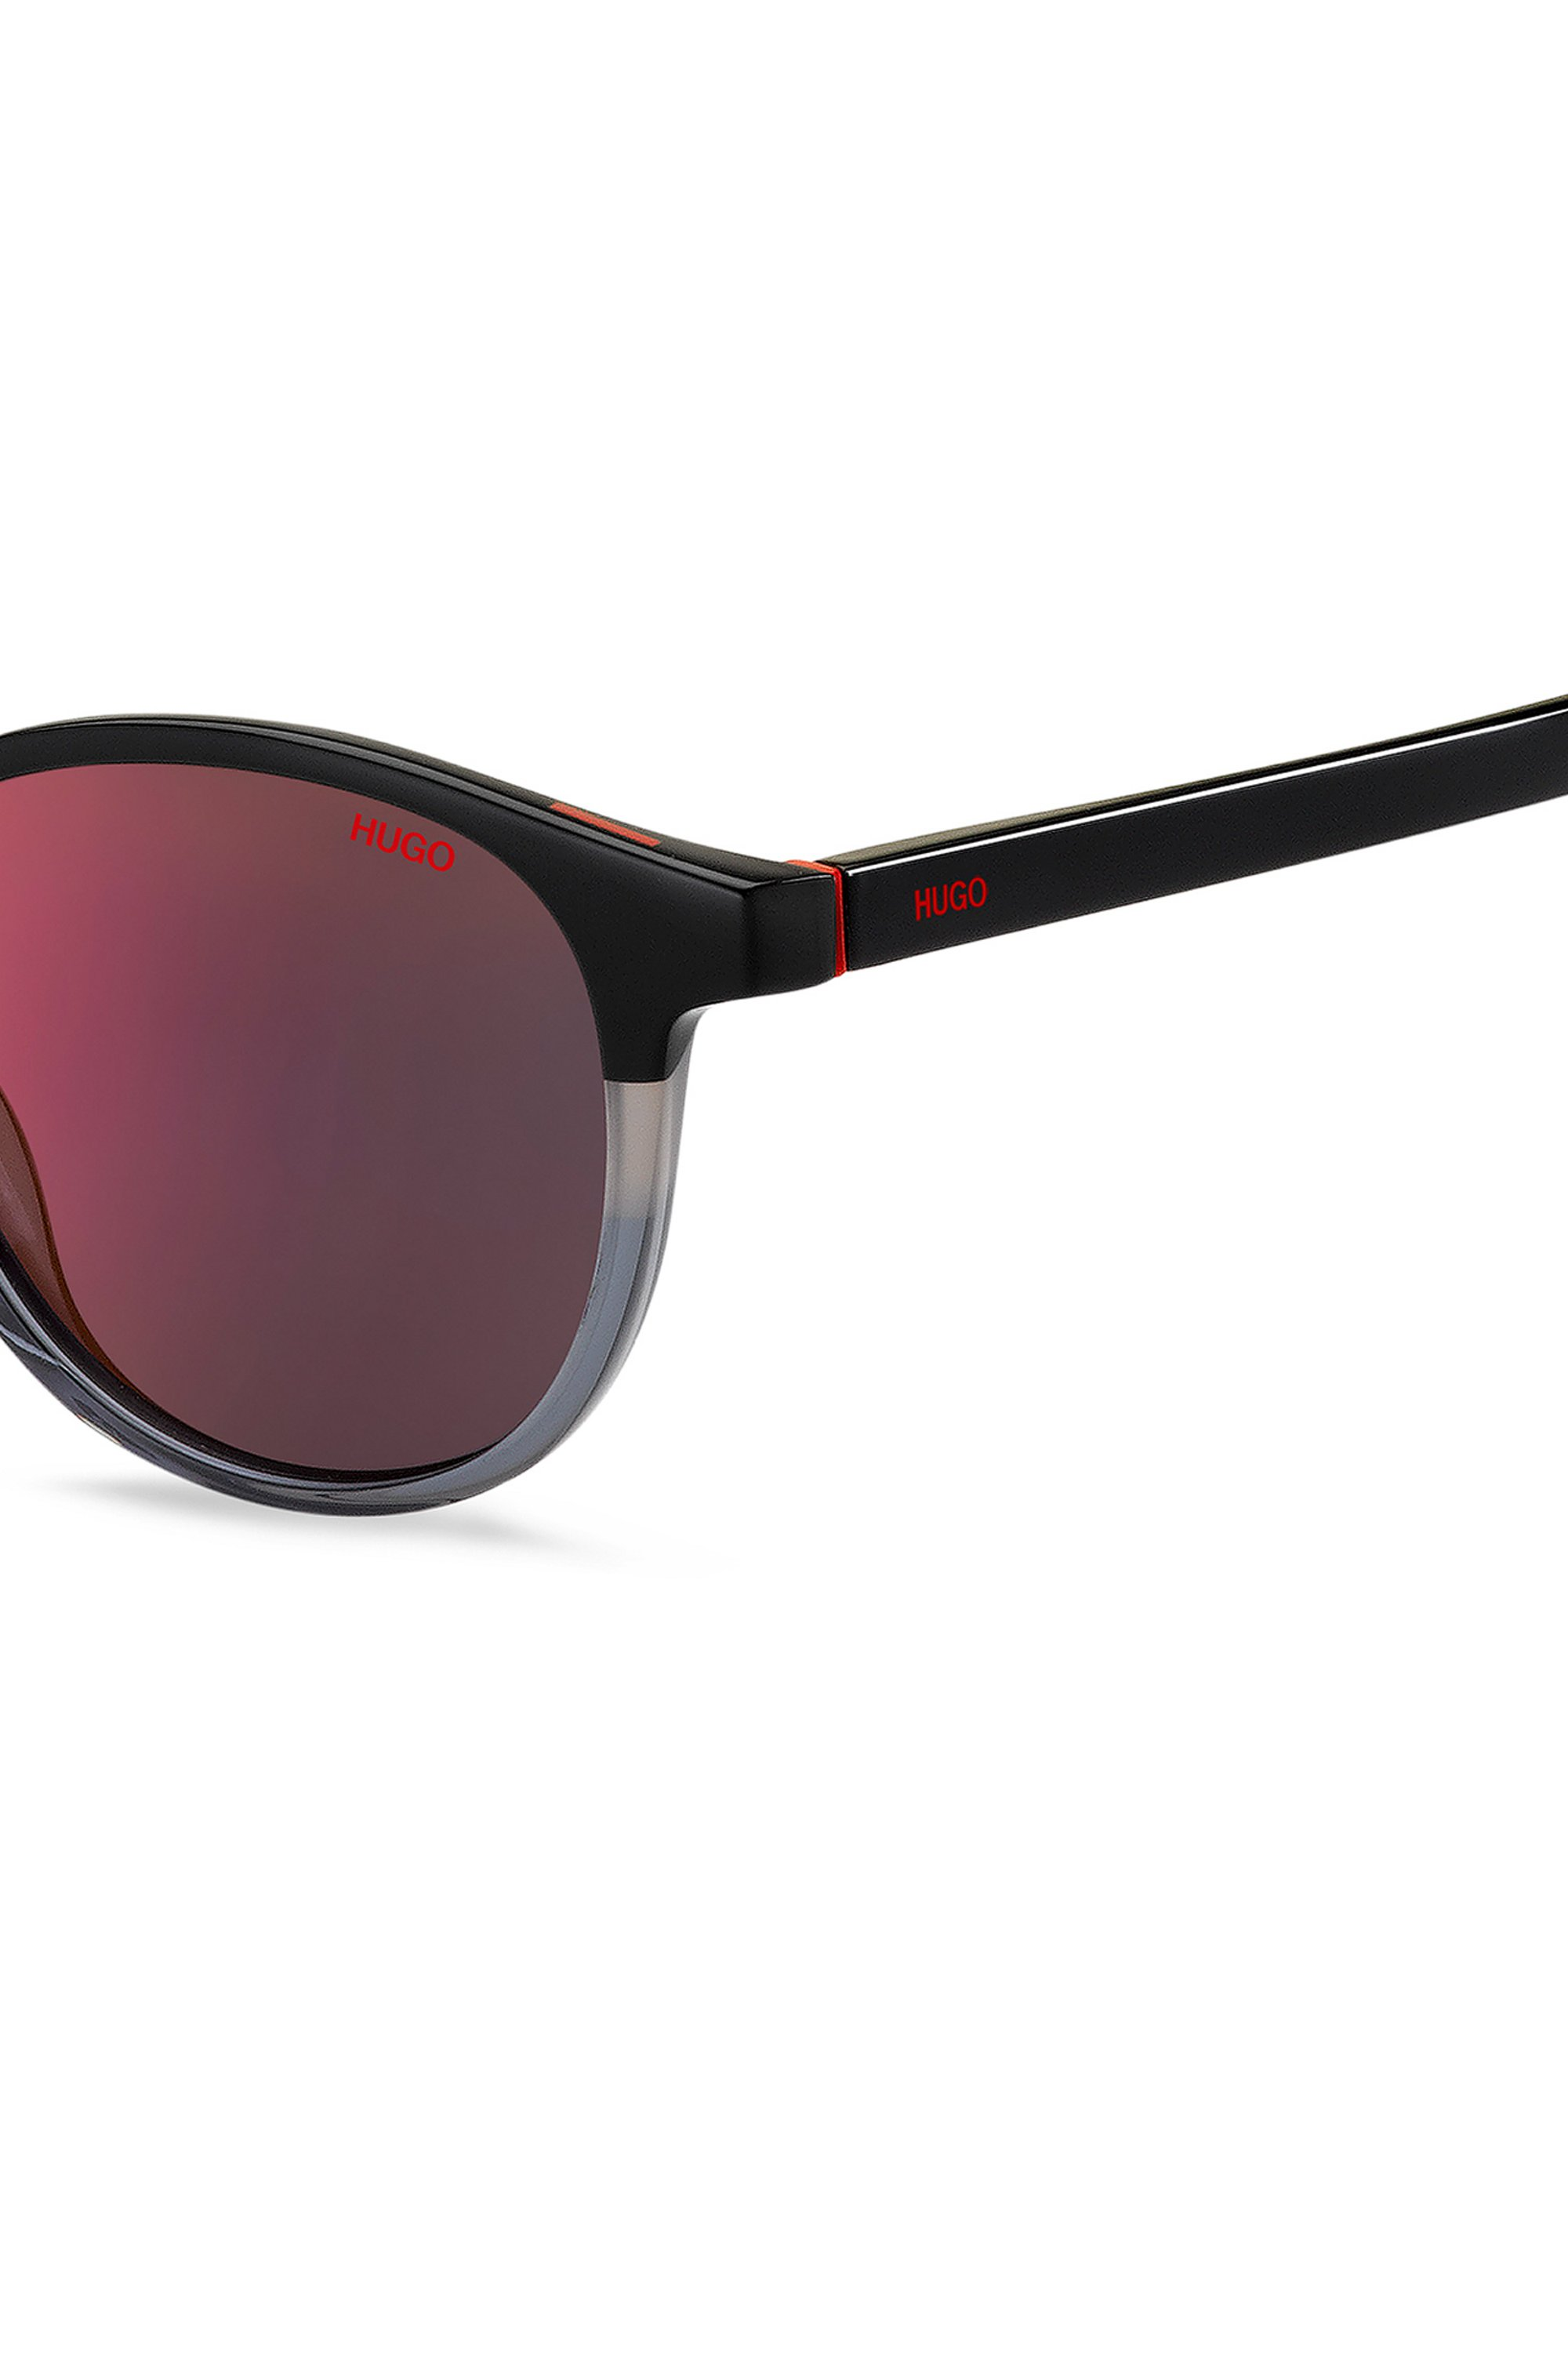 Round sunglasses with colour-blocking and red mirrored lenses